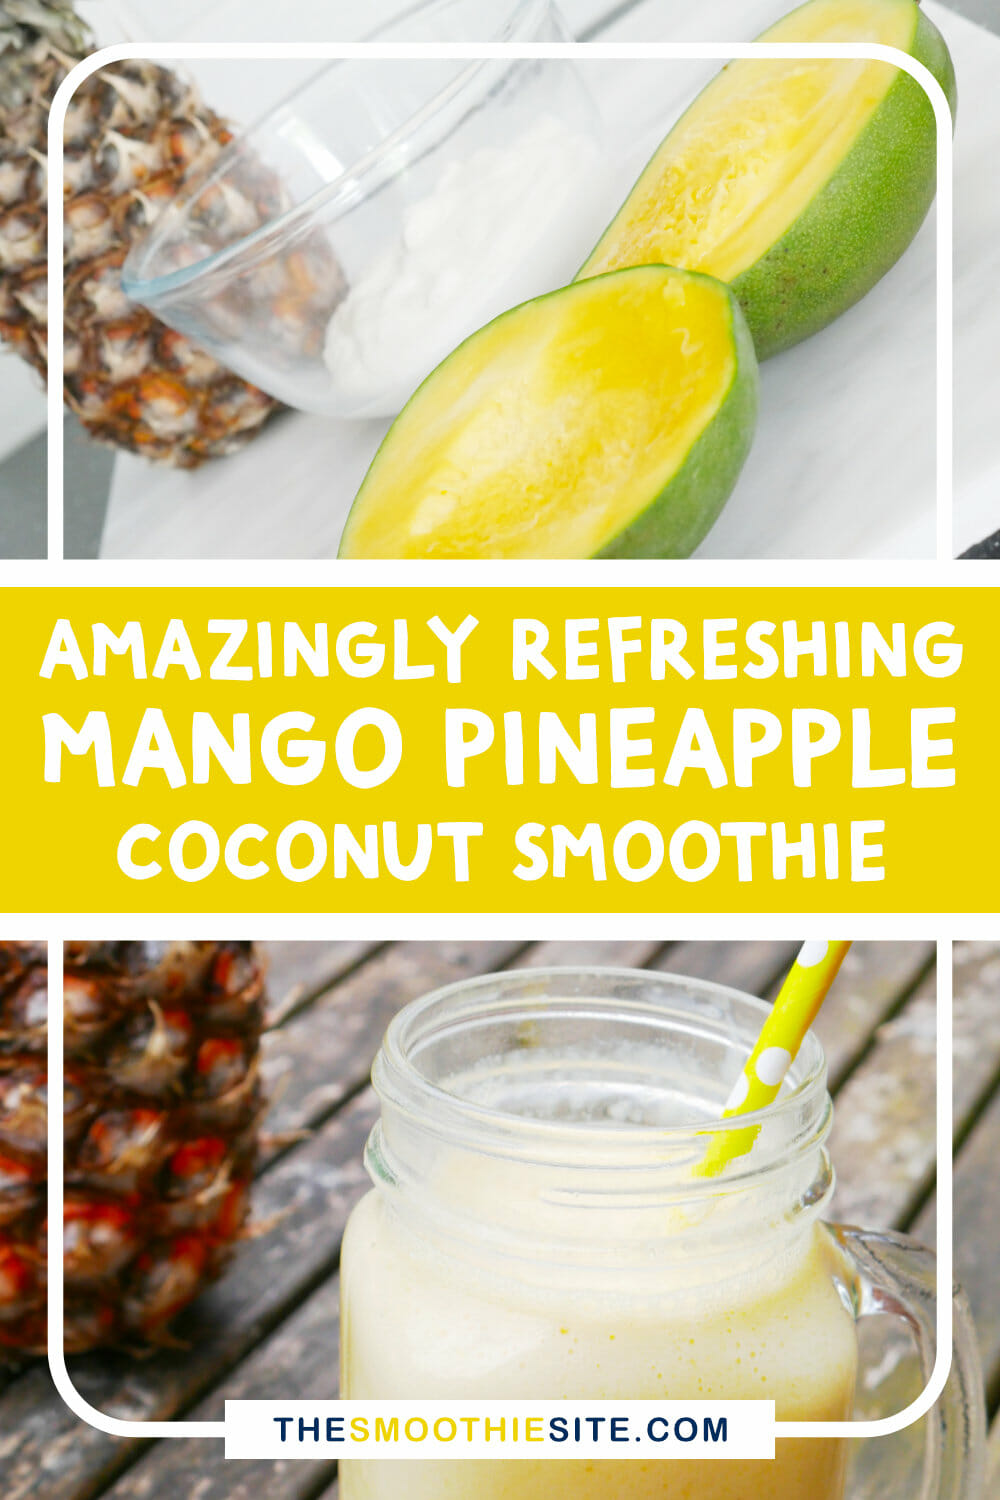 Amazingly refreshing mango pineapple coconut smoothie